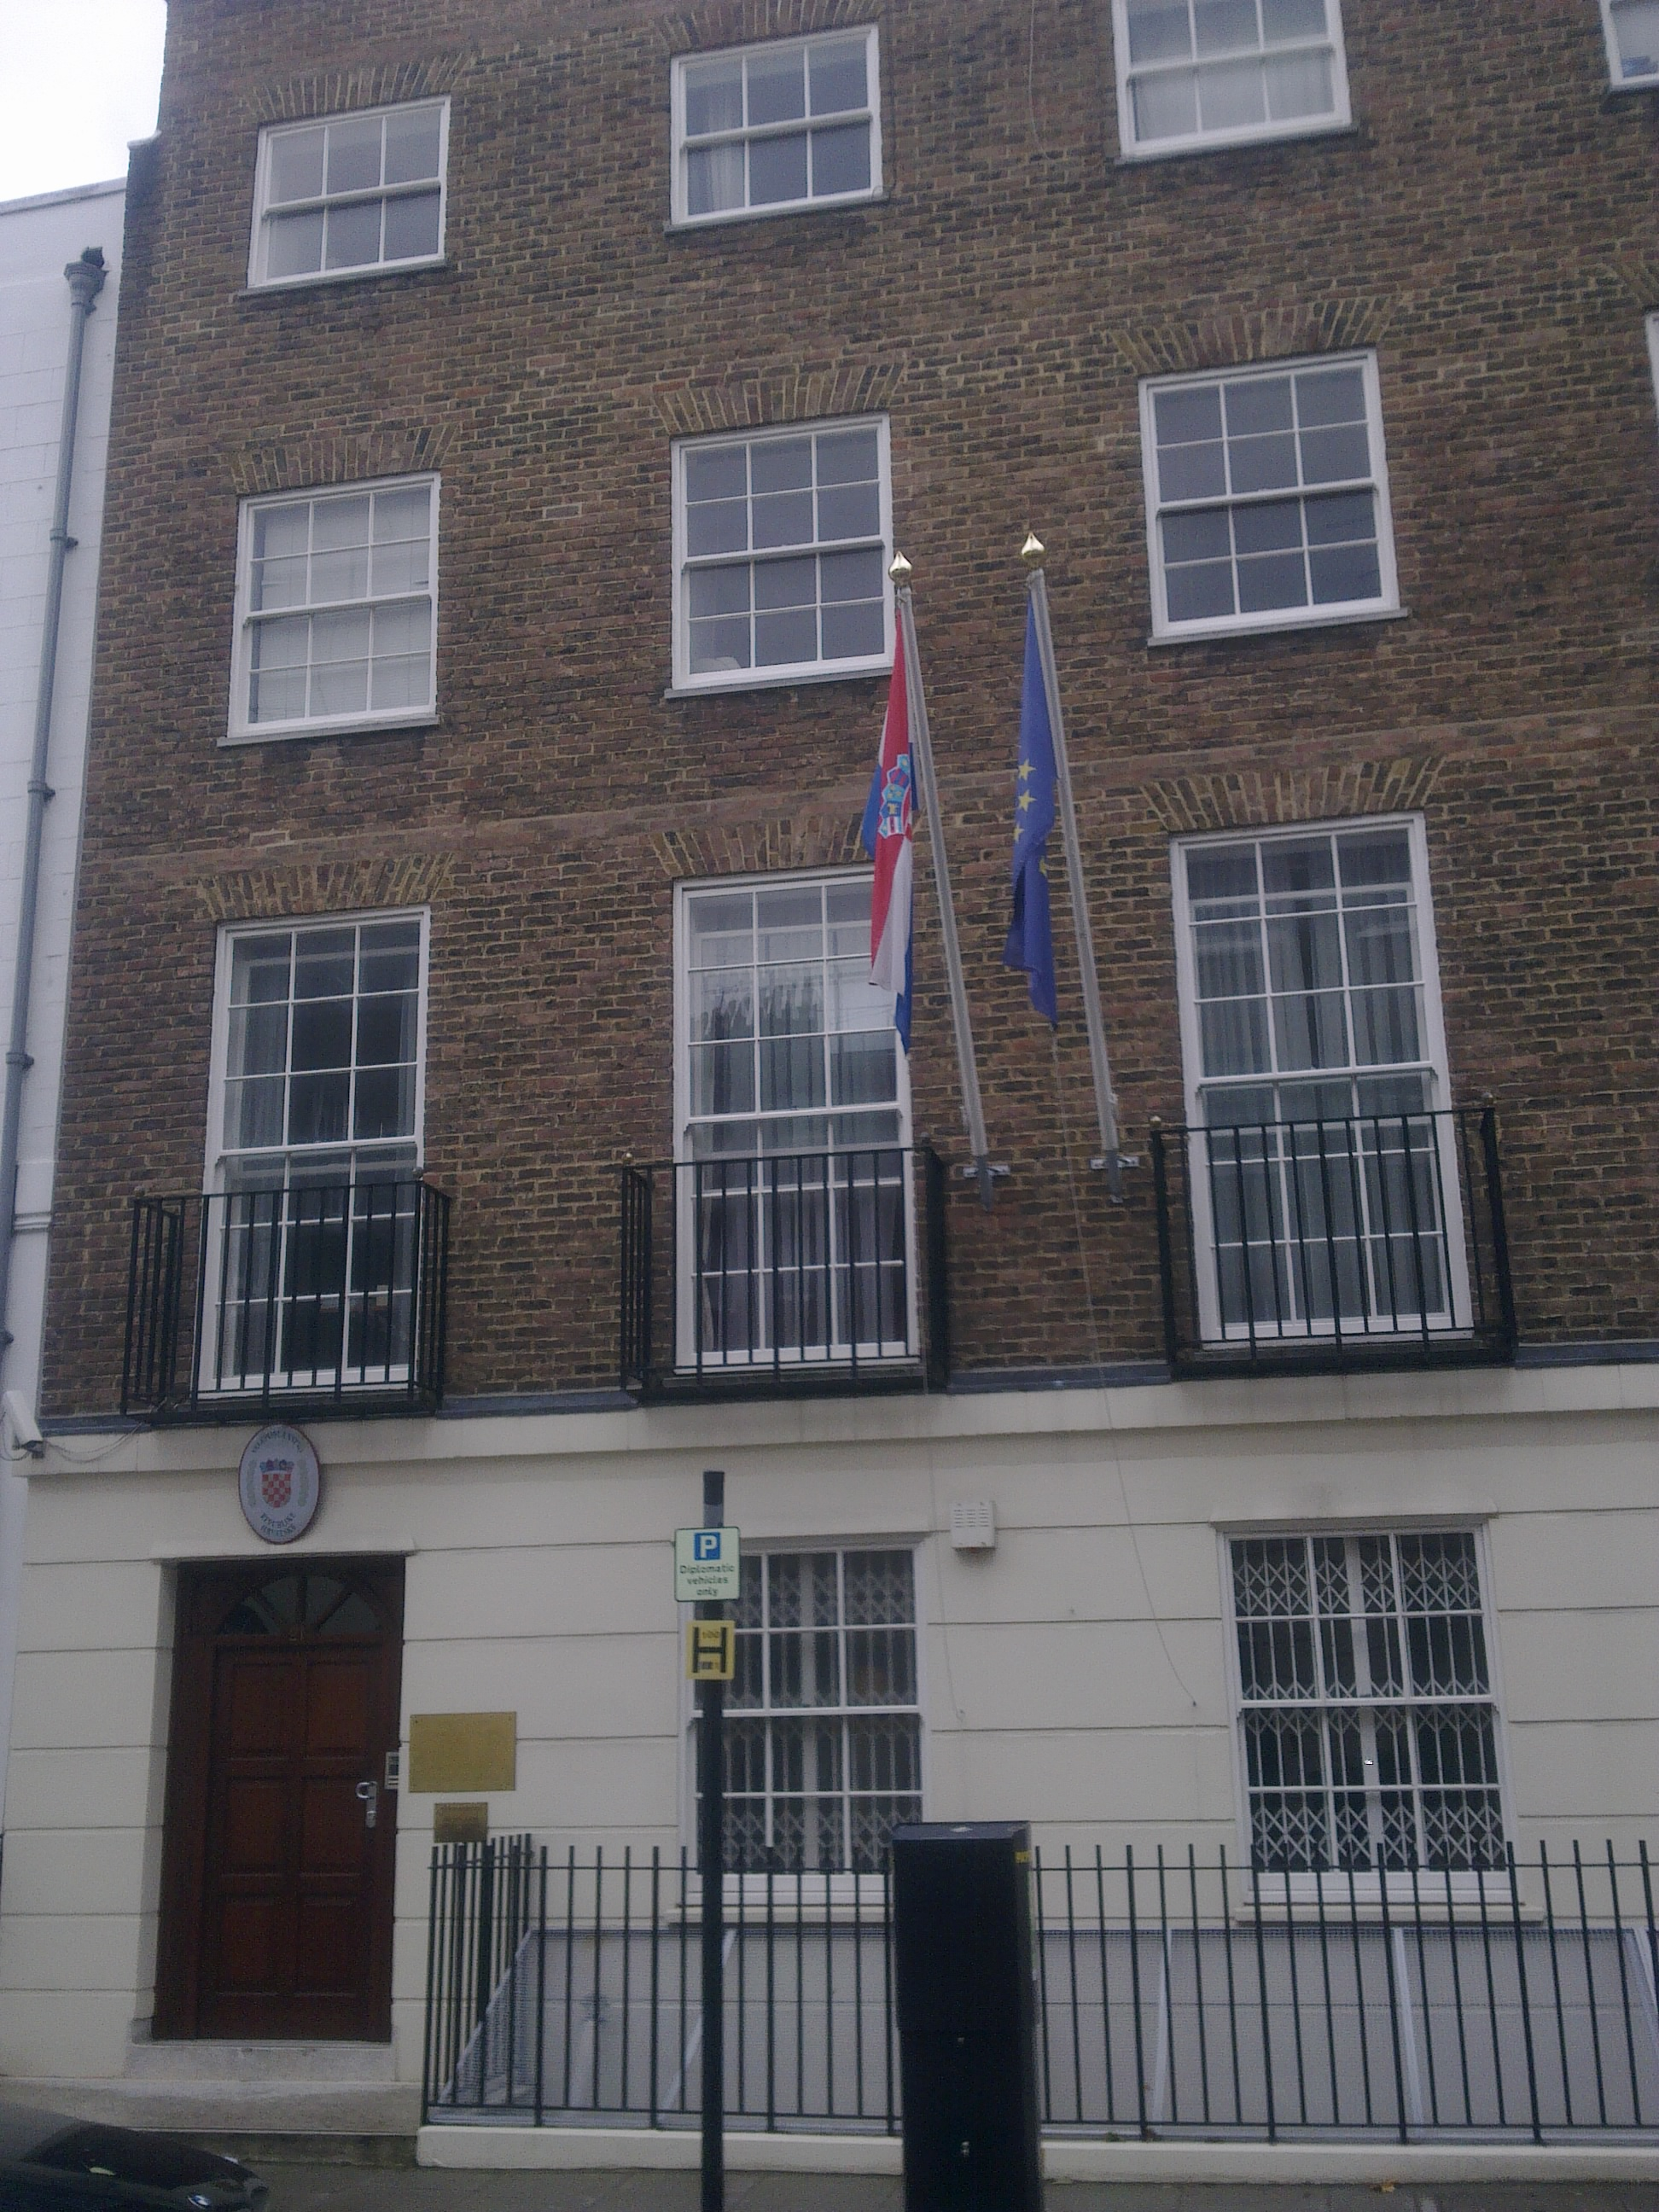 http://upload.wikimedia.org/wikipedia/commons/2/23/Embassy_of_Croatia_in_London_1.jpg